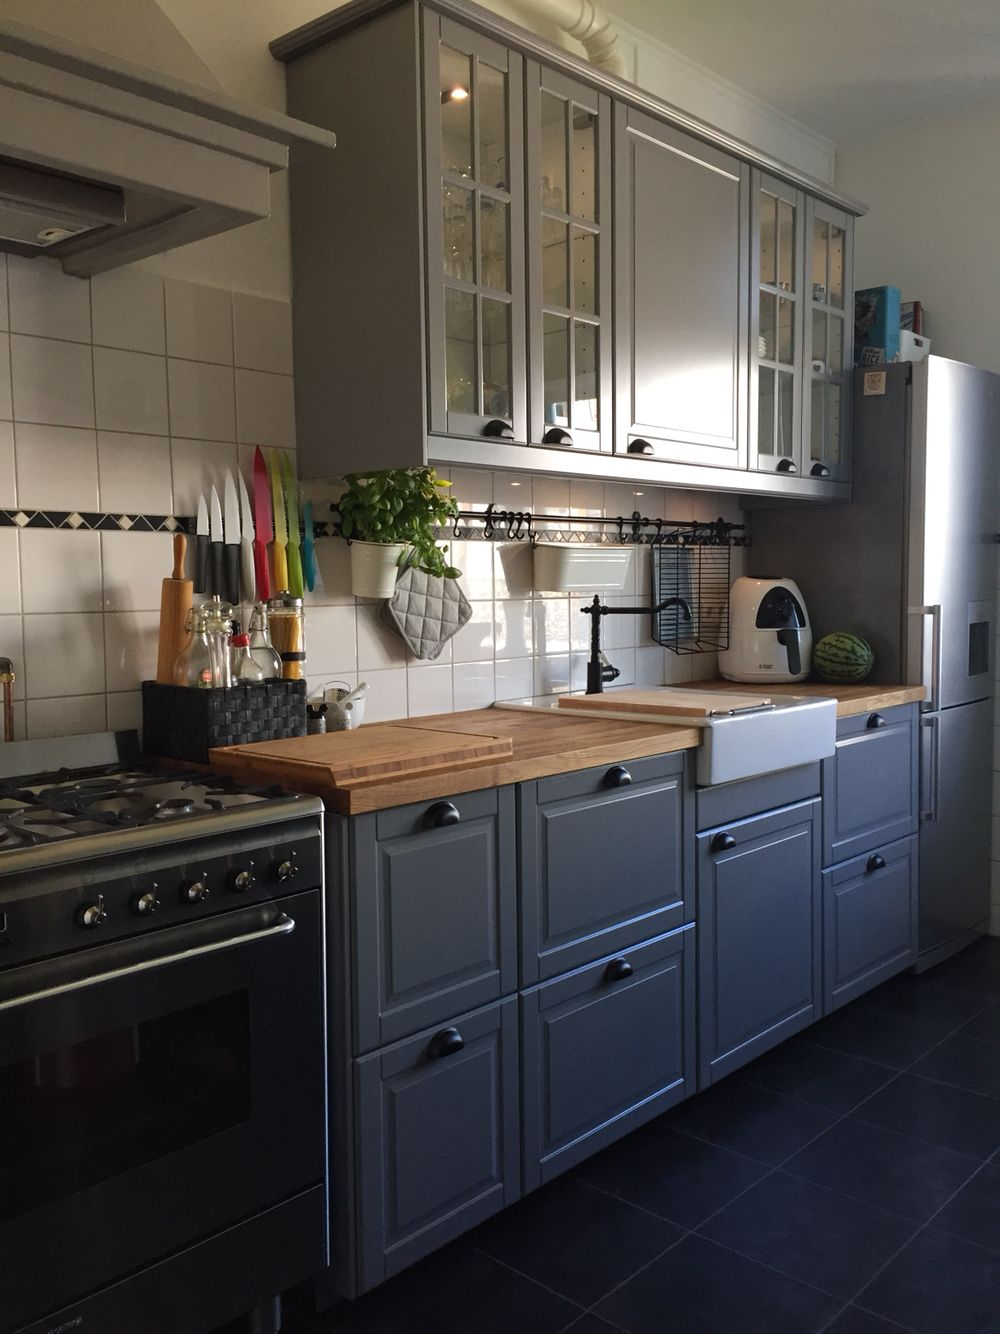 New kitchen ikea bodbyn grey cocina pinterest - Ikea cocinas modulares ...